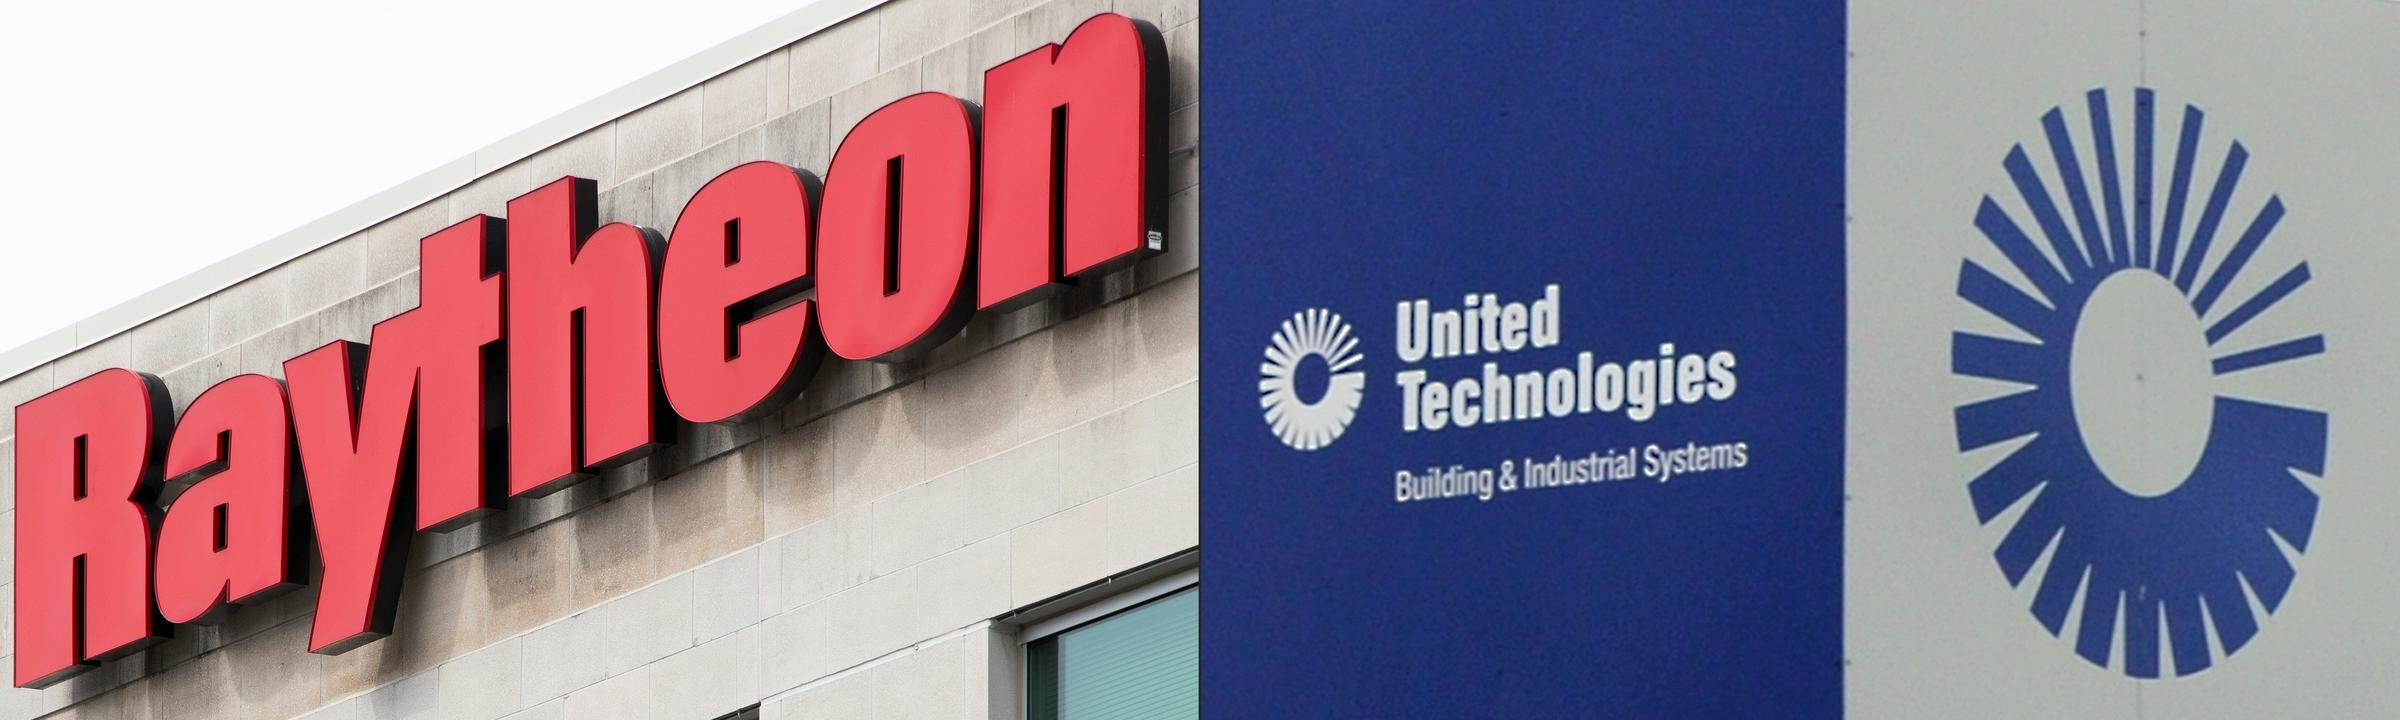 Raytheon, United Technologies Merger Will Create A New.